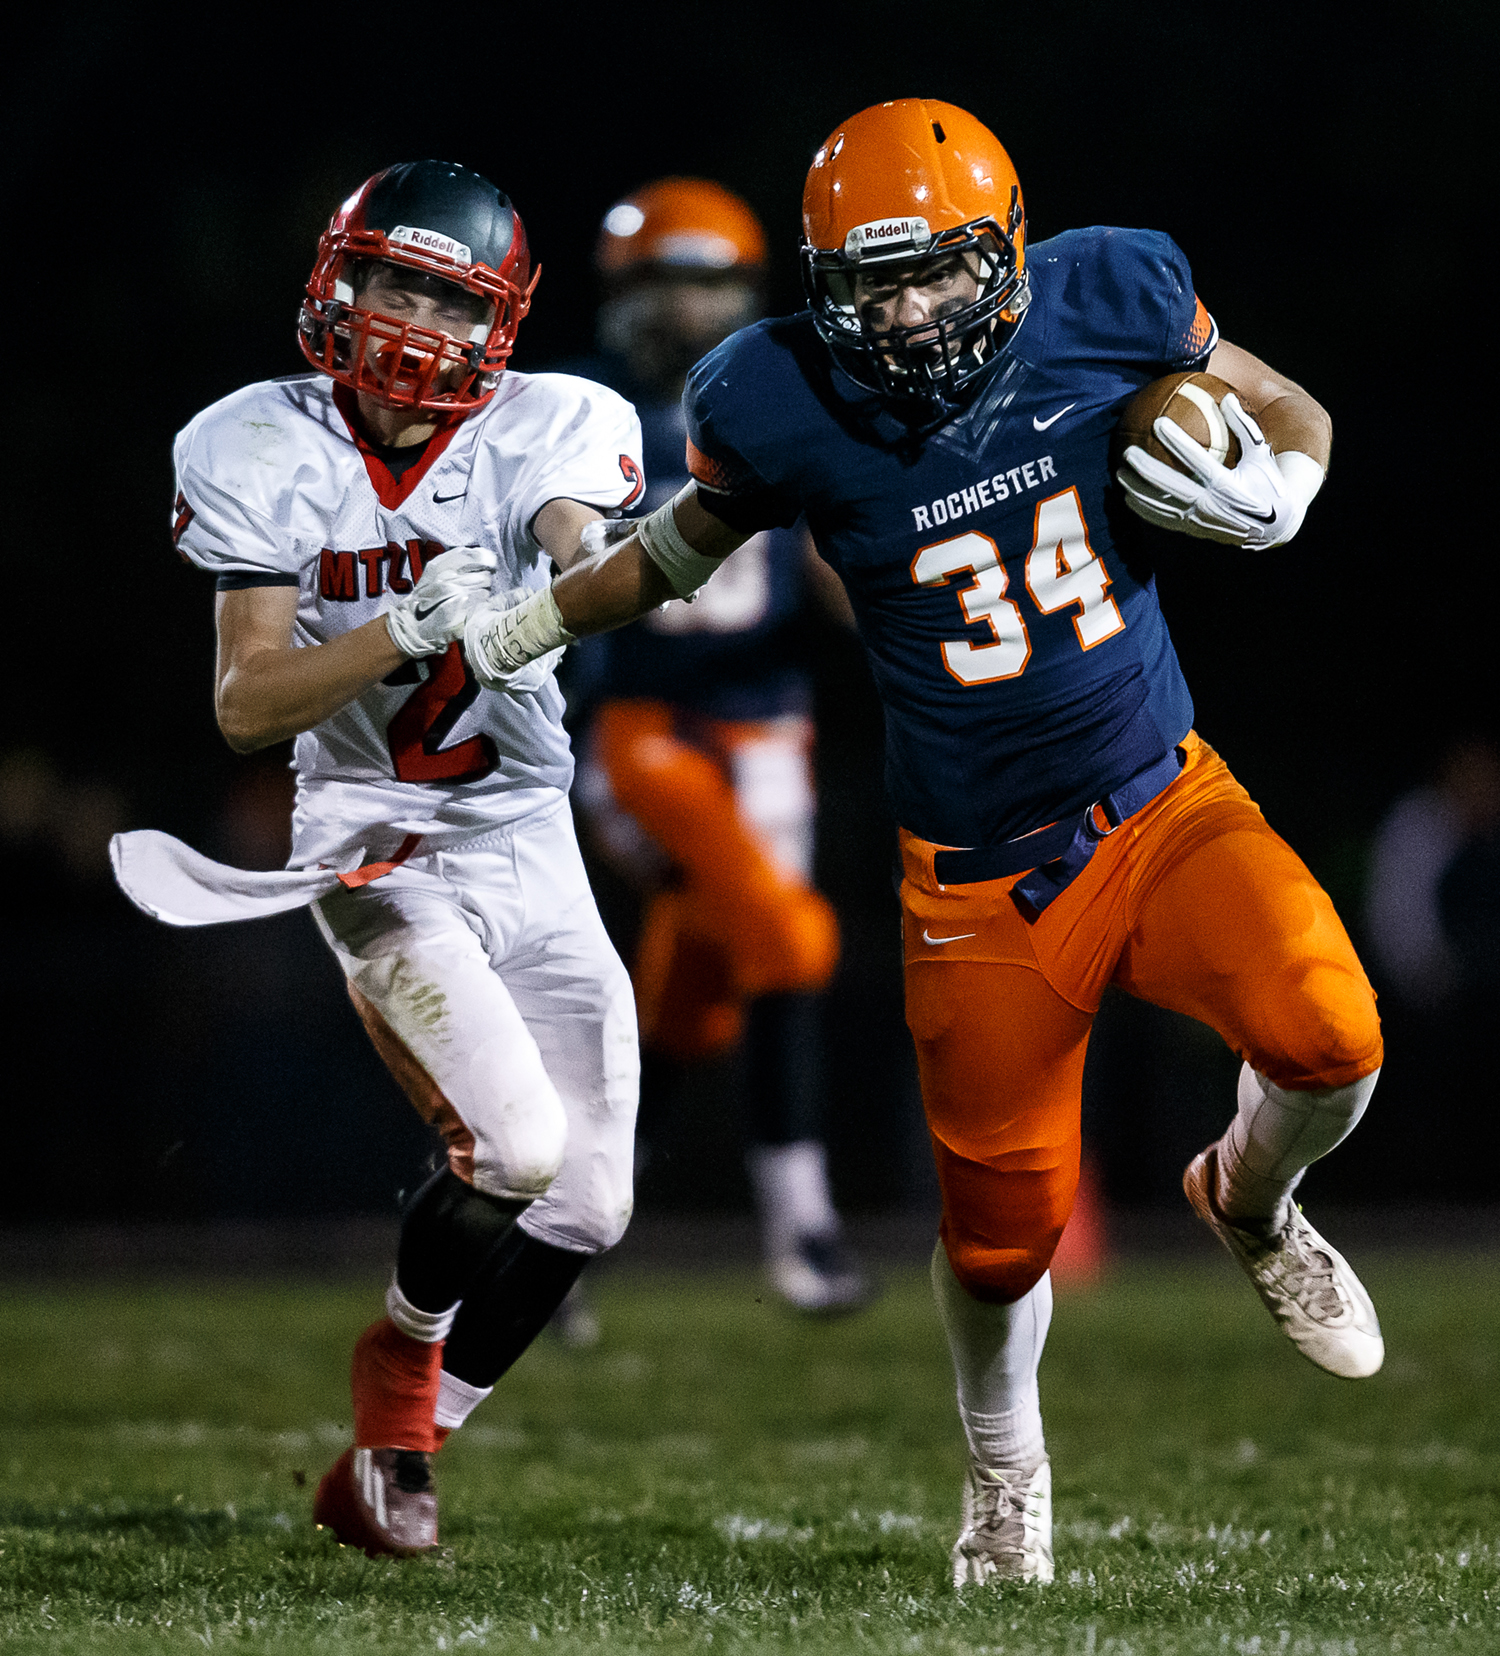 Rochester's Evan Sembell (34) puts a stiff arm on Mt. Zion's Charles Kuhle (2) to avoid a tackle on a rush in the first half during the first round of the Class 4A playoffs at Rocket Booster Field, Saturday, Nov. 1, 2014, in Rochester, Ill. Justin L. Fowler/The State Journal-Register